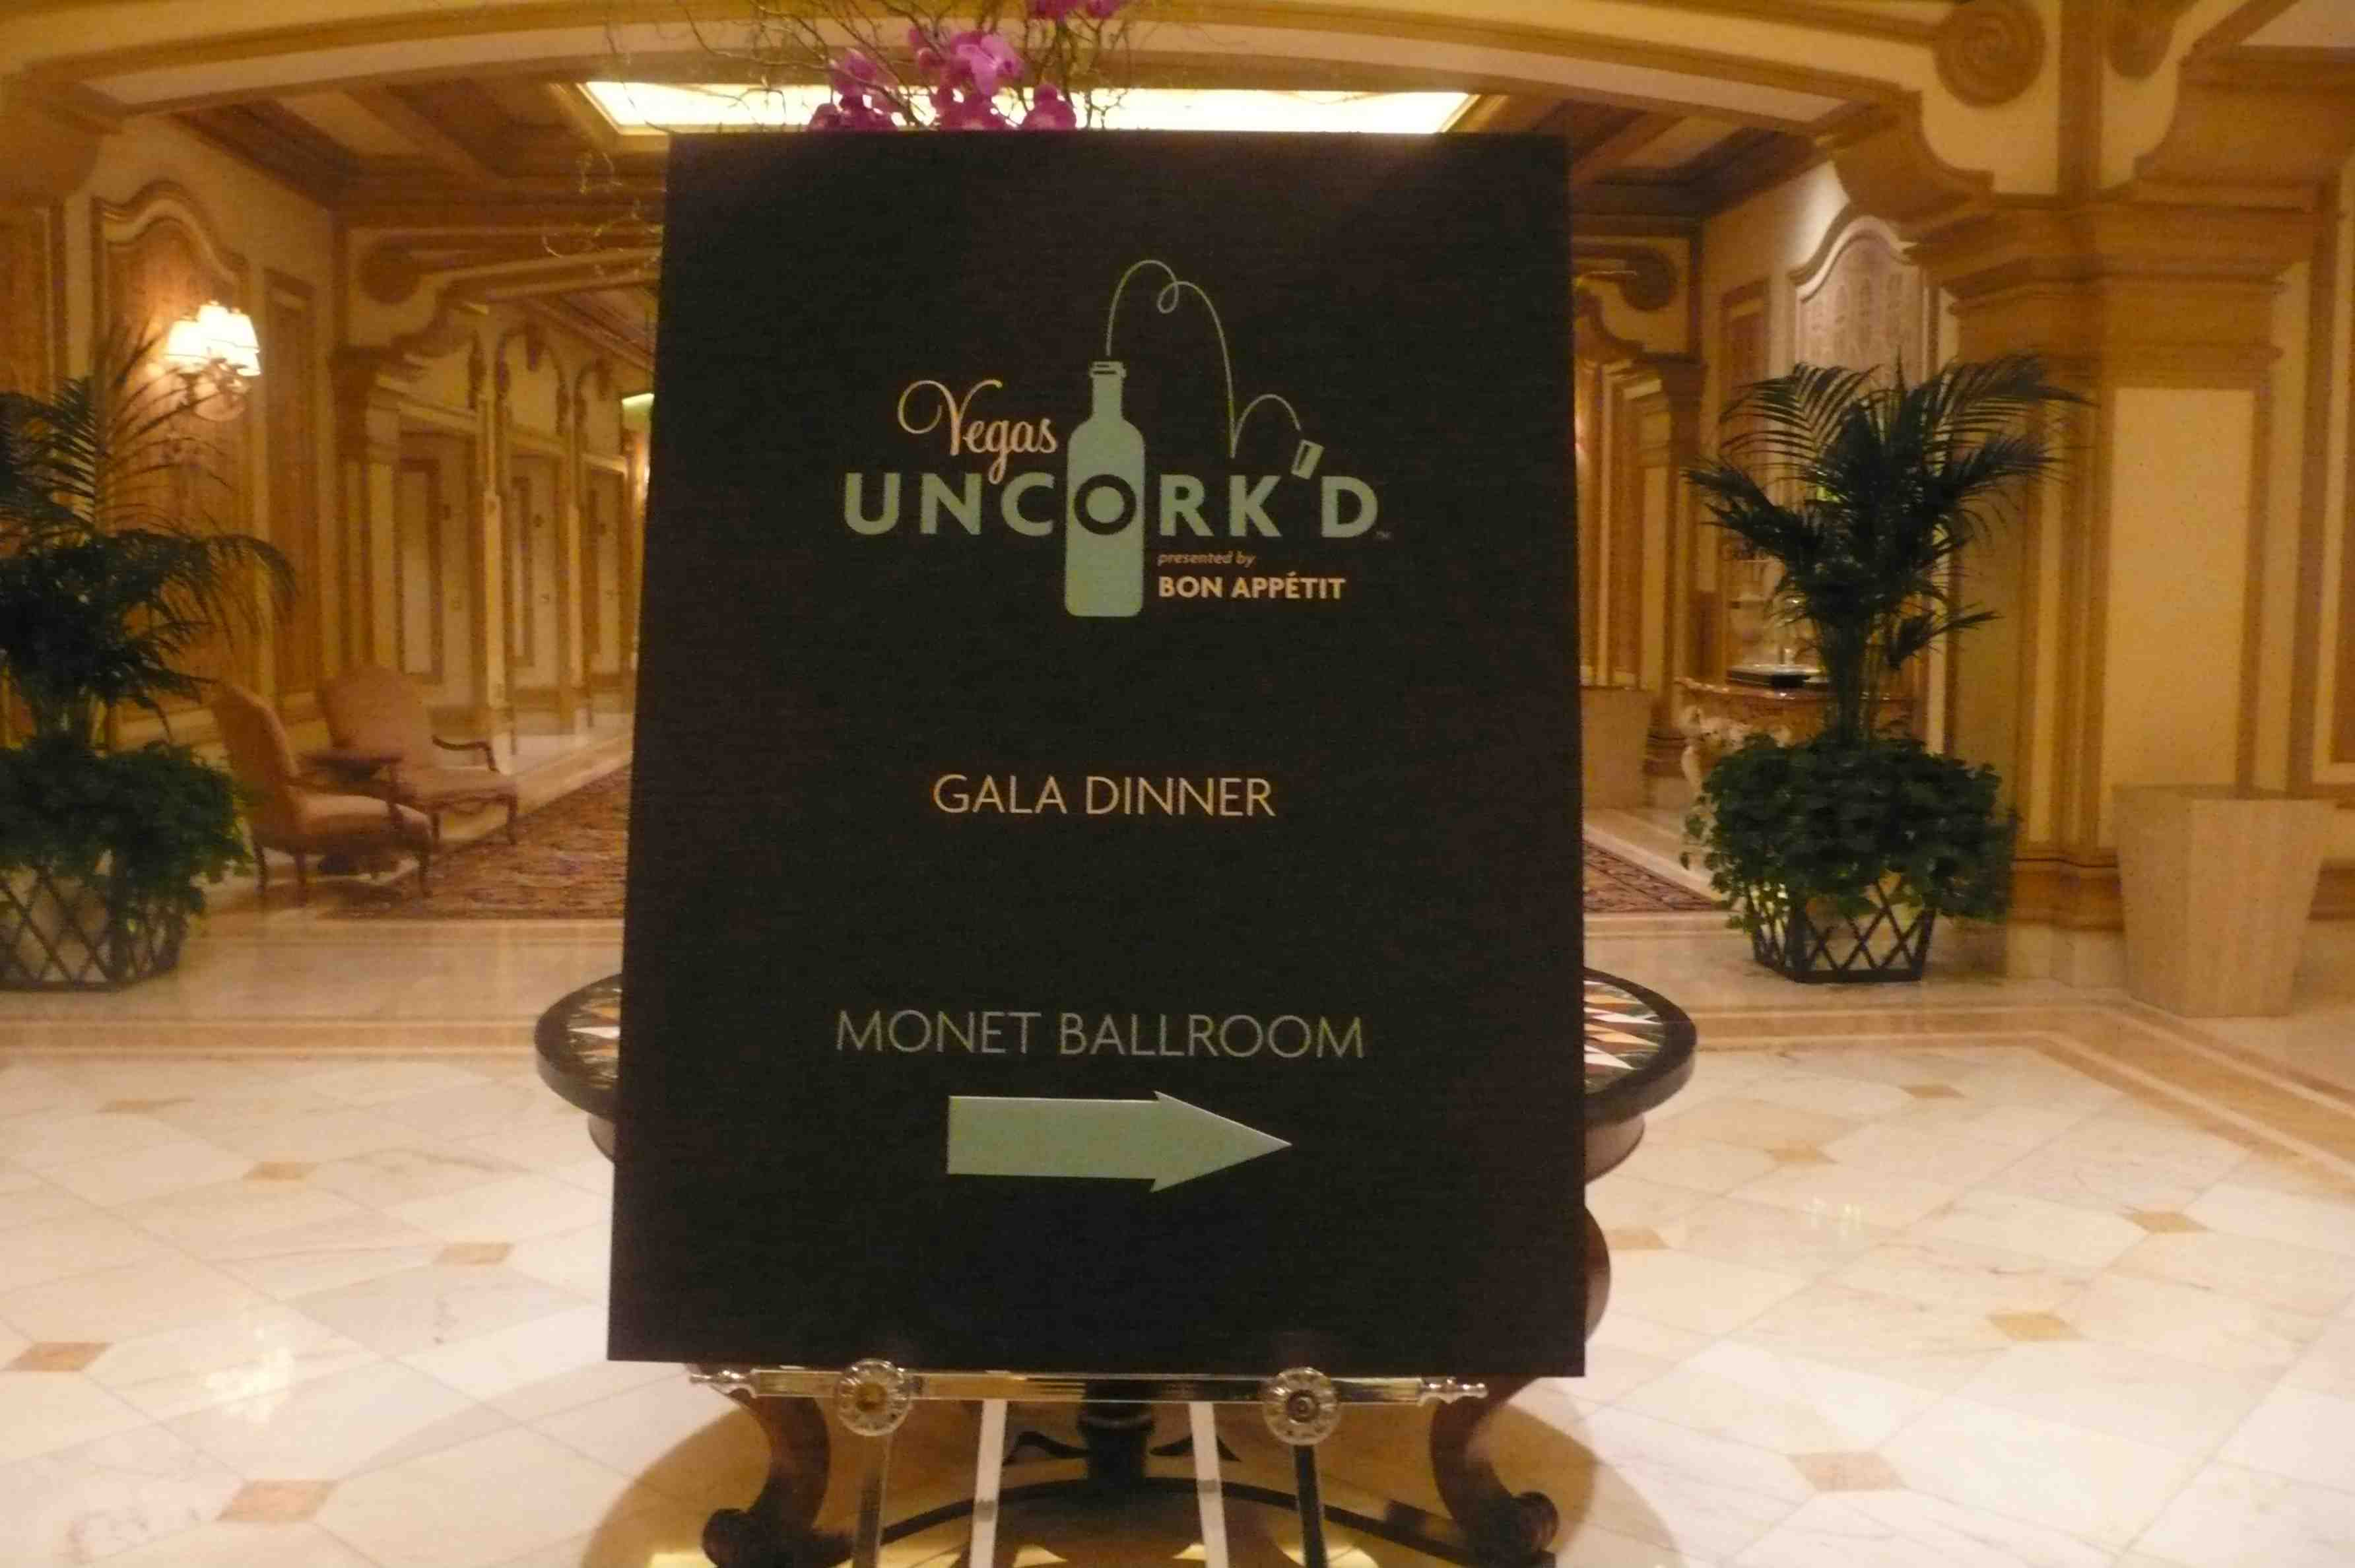 May 9 Uncork'd Gala Dinner